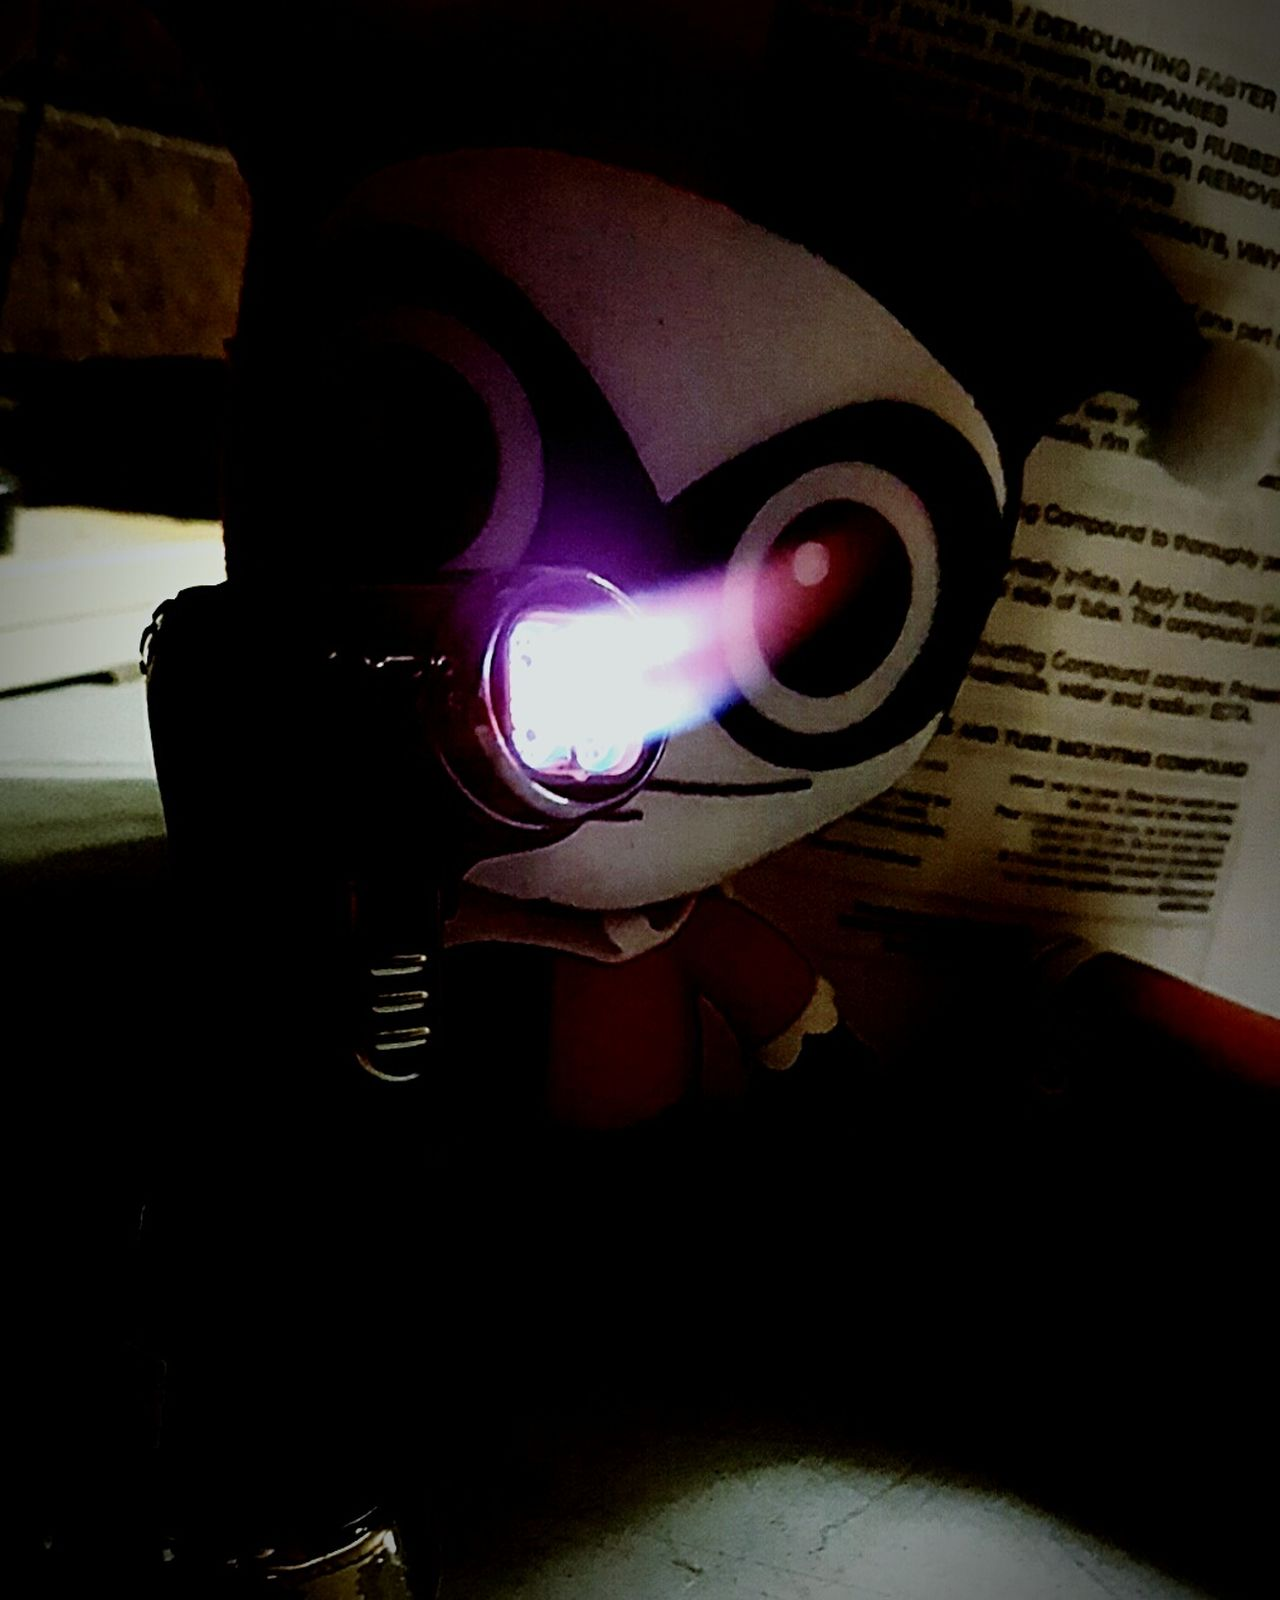 Indoors  No People Arts Culture And Entertainment Harleyquinn SuicideSquad Villan Redandblack Jokers Girl Puddin Jokers And Jesters Crazylove Fun! Toys Flamethrower Psycopath Lovepain